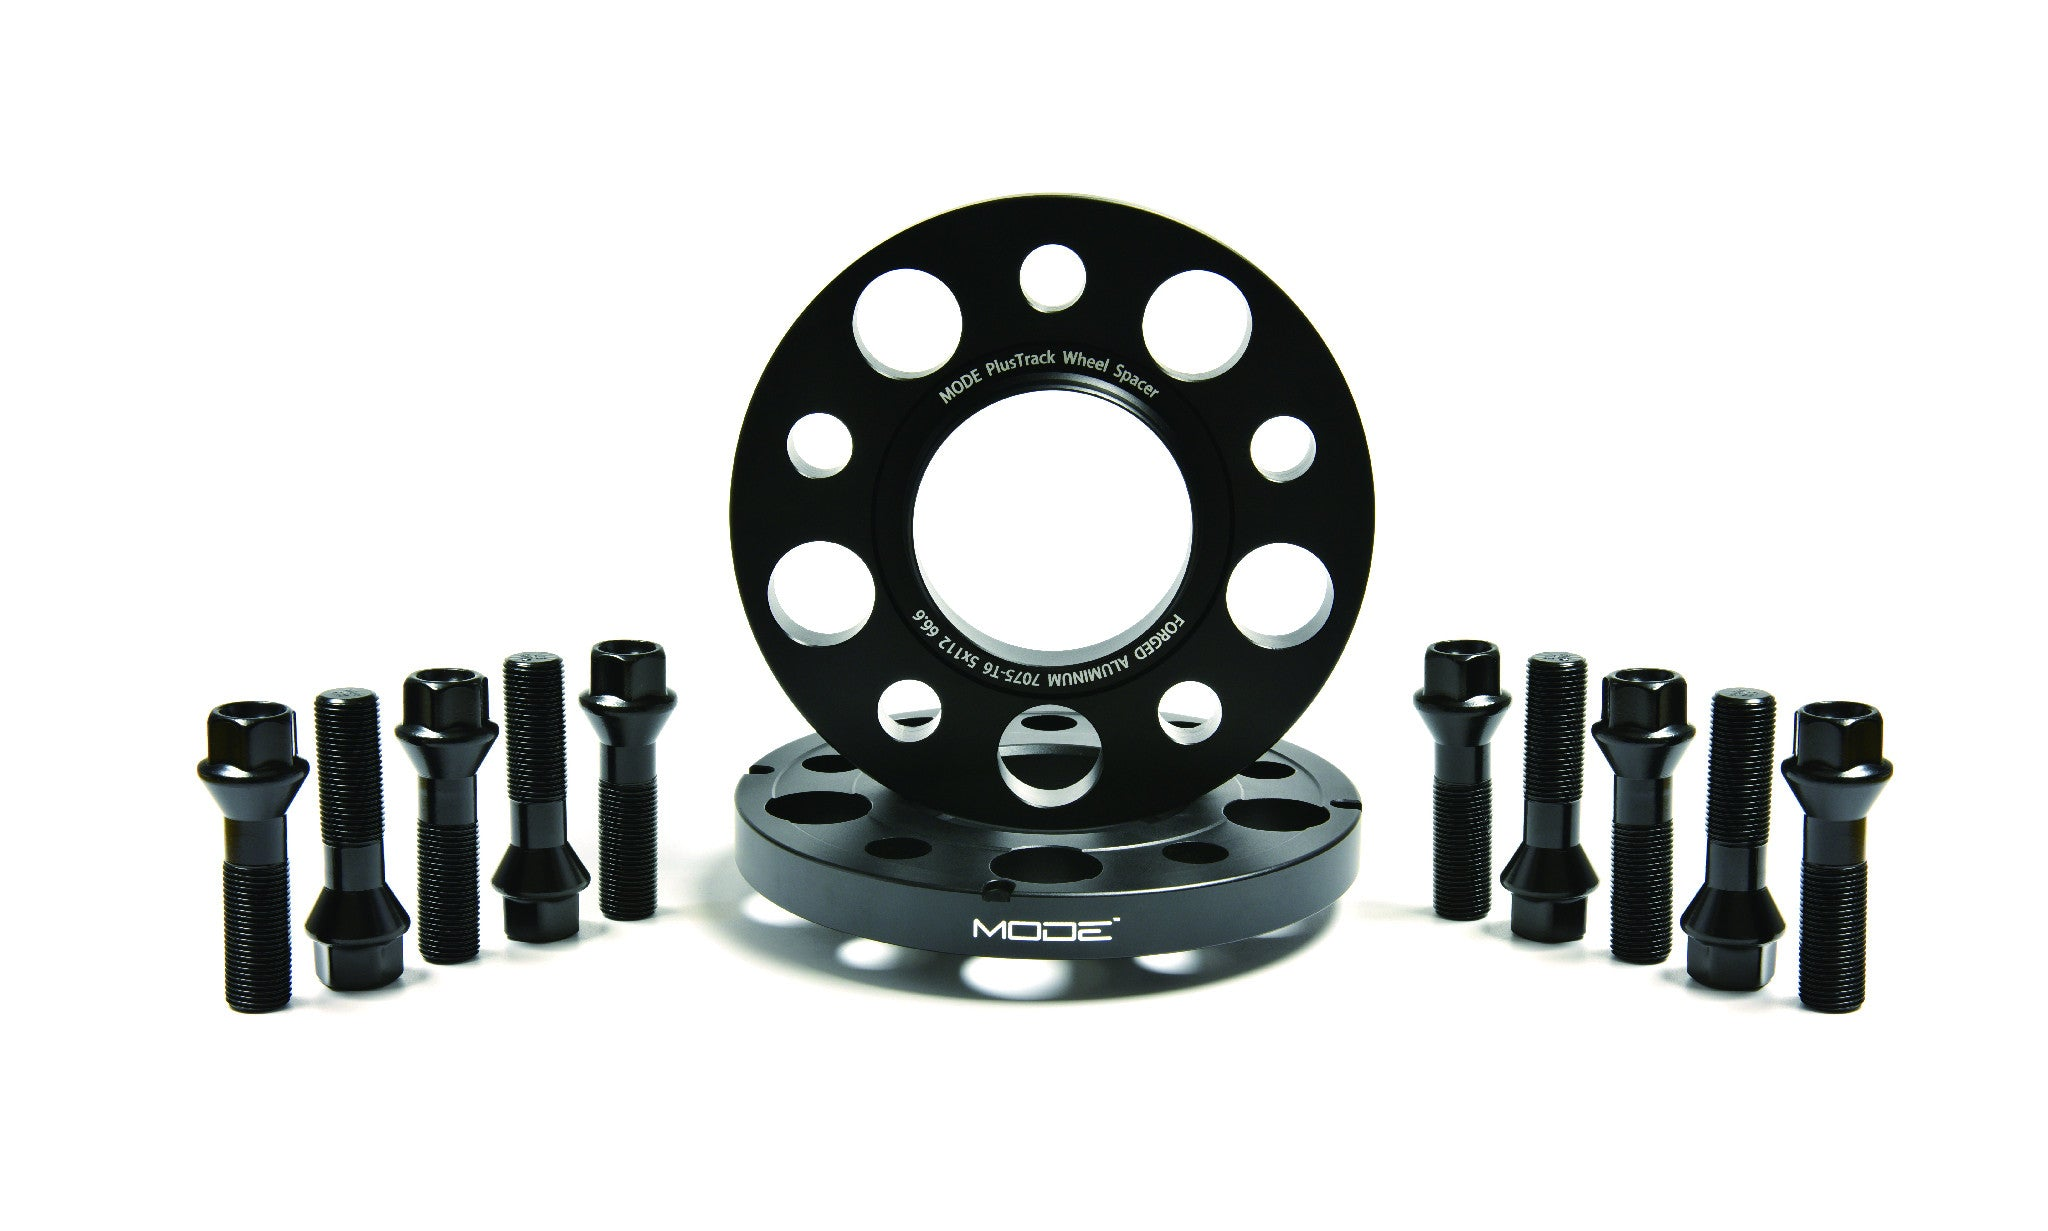 MODE PlusTrack Wheel Spacer Kit 18mm Lamborghini Huracan - MODE Auto Concepts